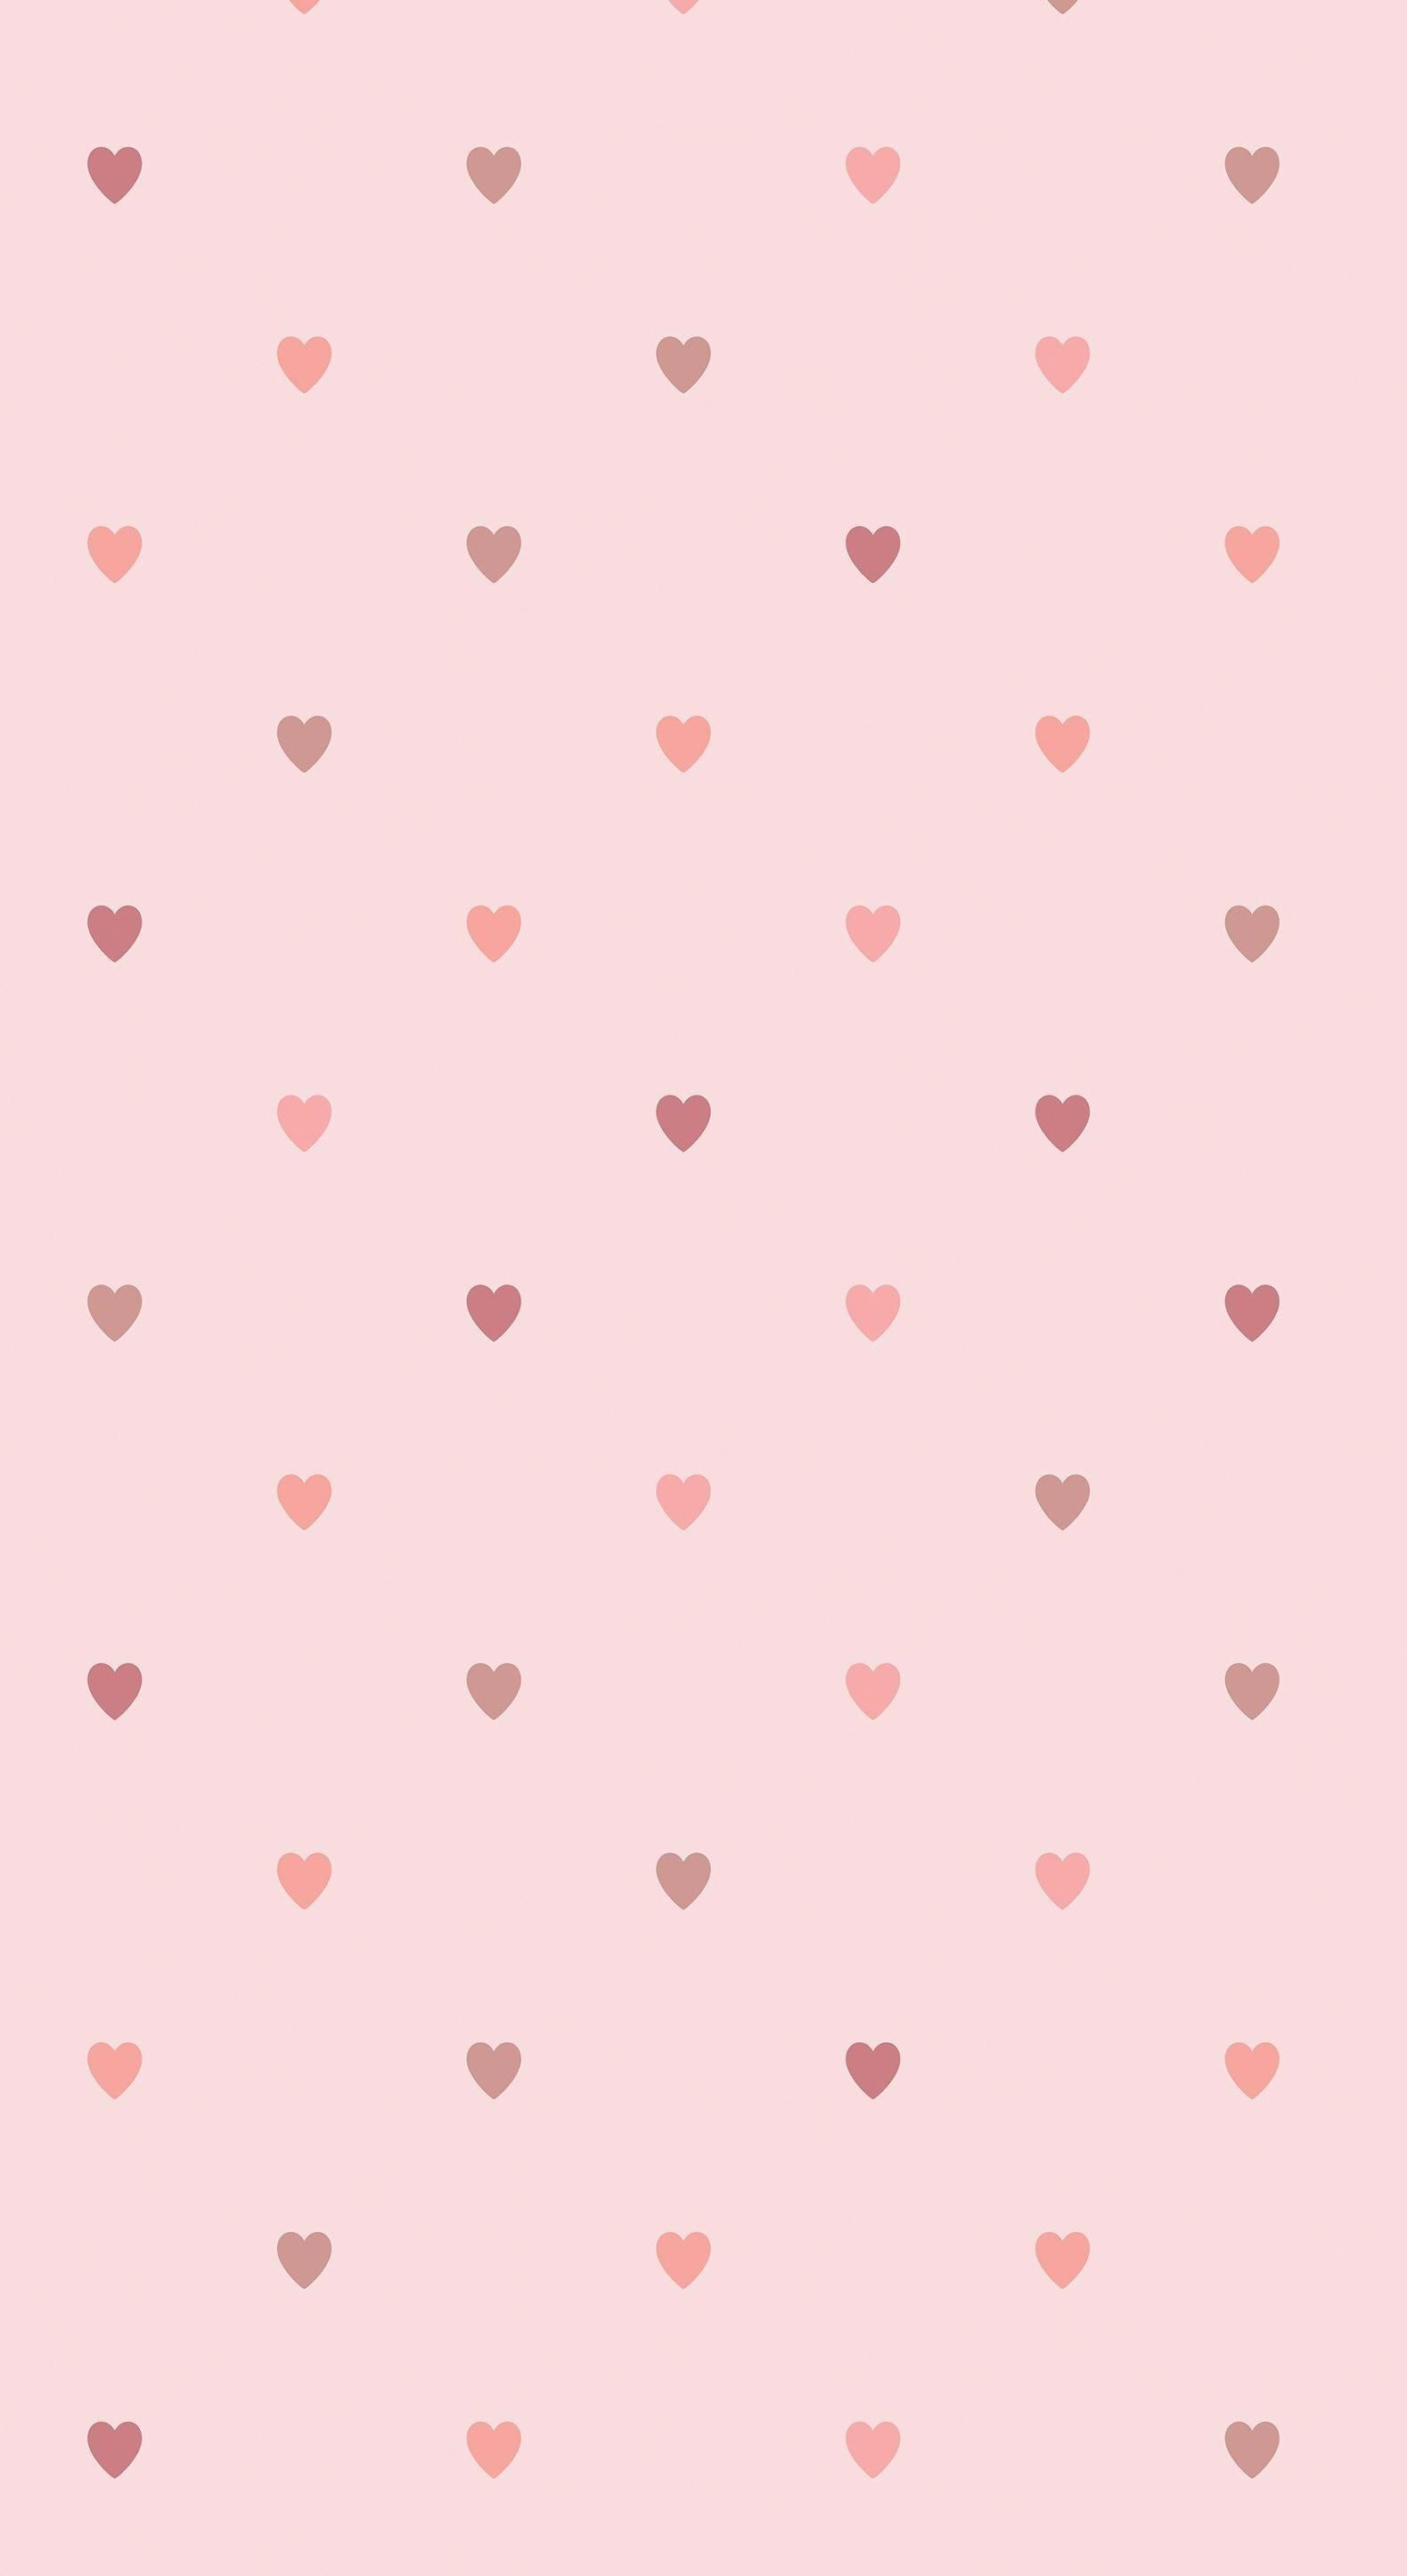 Luxury Pink Heart Wallpaper For Mobile Wallpaper Iphone Wallpaper Iphone Lucu Wallpaper Ponsel